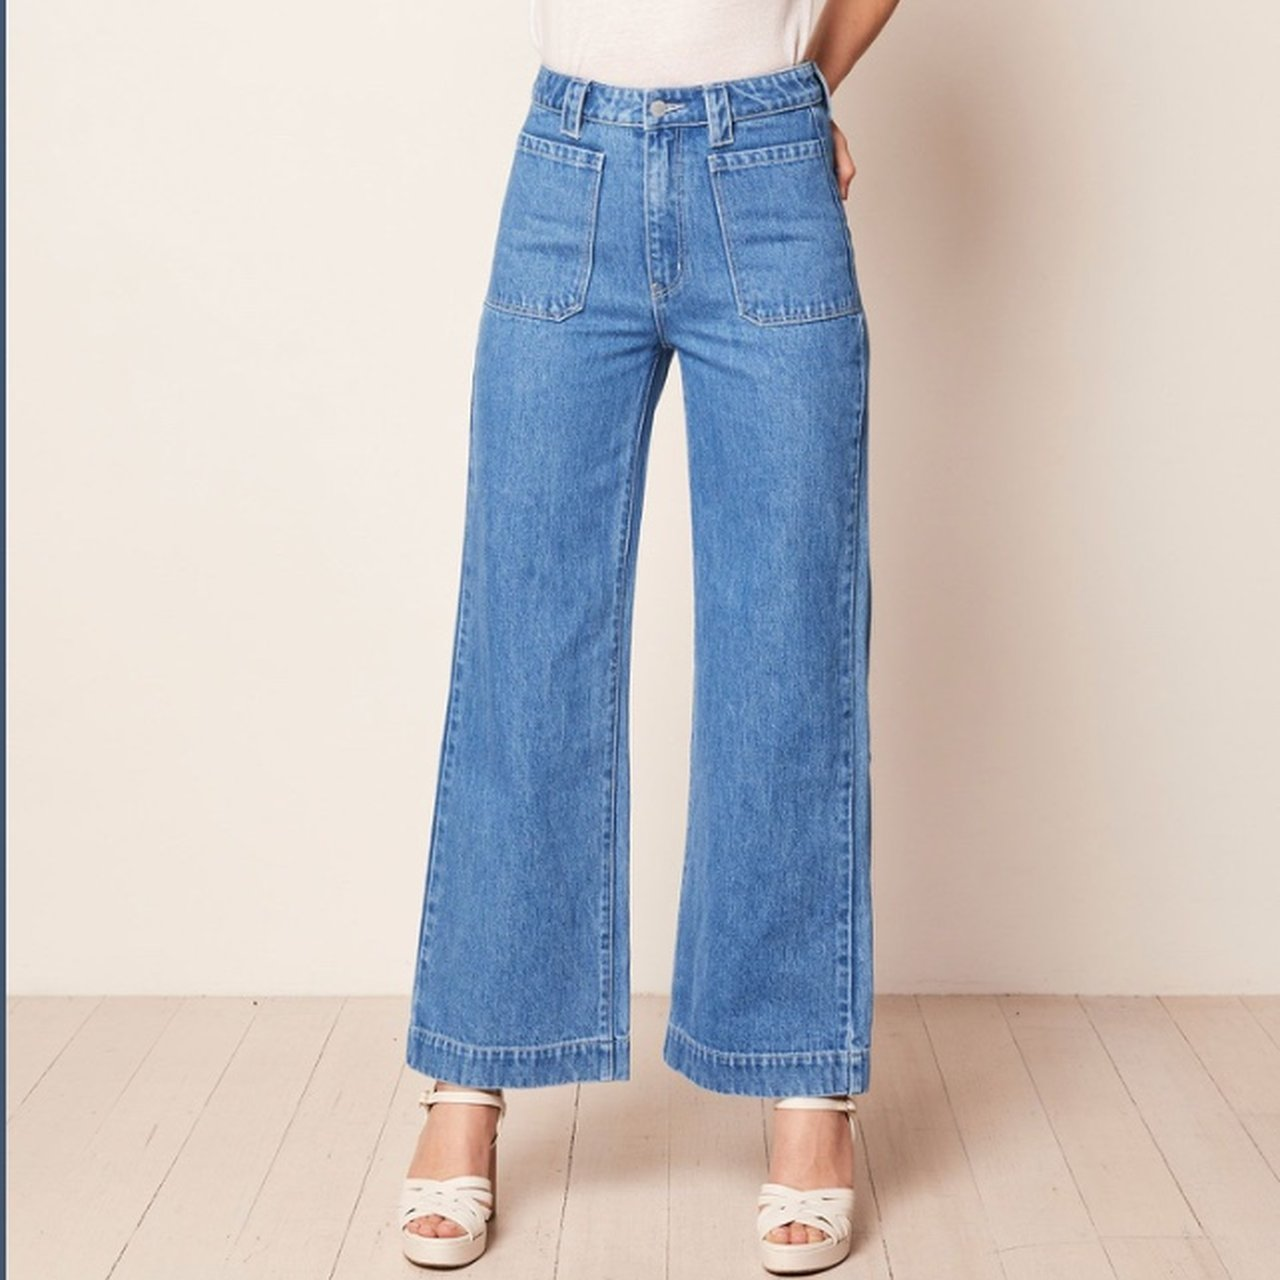 2f45eba7a963 Shoptagr | I Have The Iconic Rollas Sailor Jeans For Sale In The ...